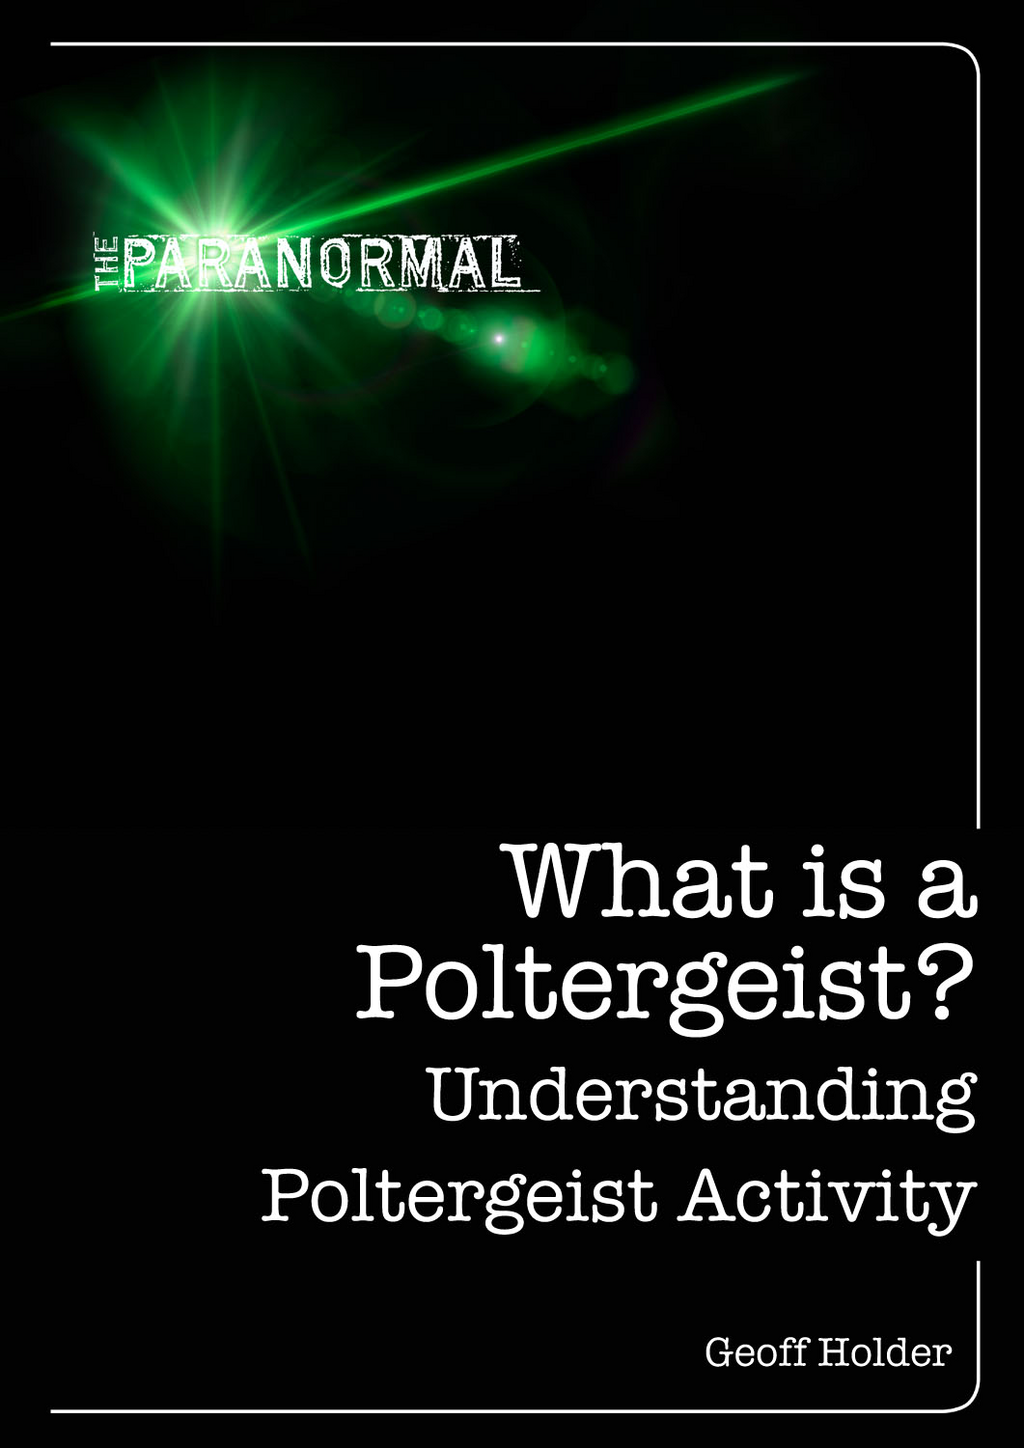 What is a Poltergeist? Understanding Poltergeist Activity